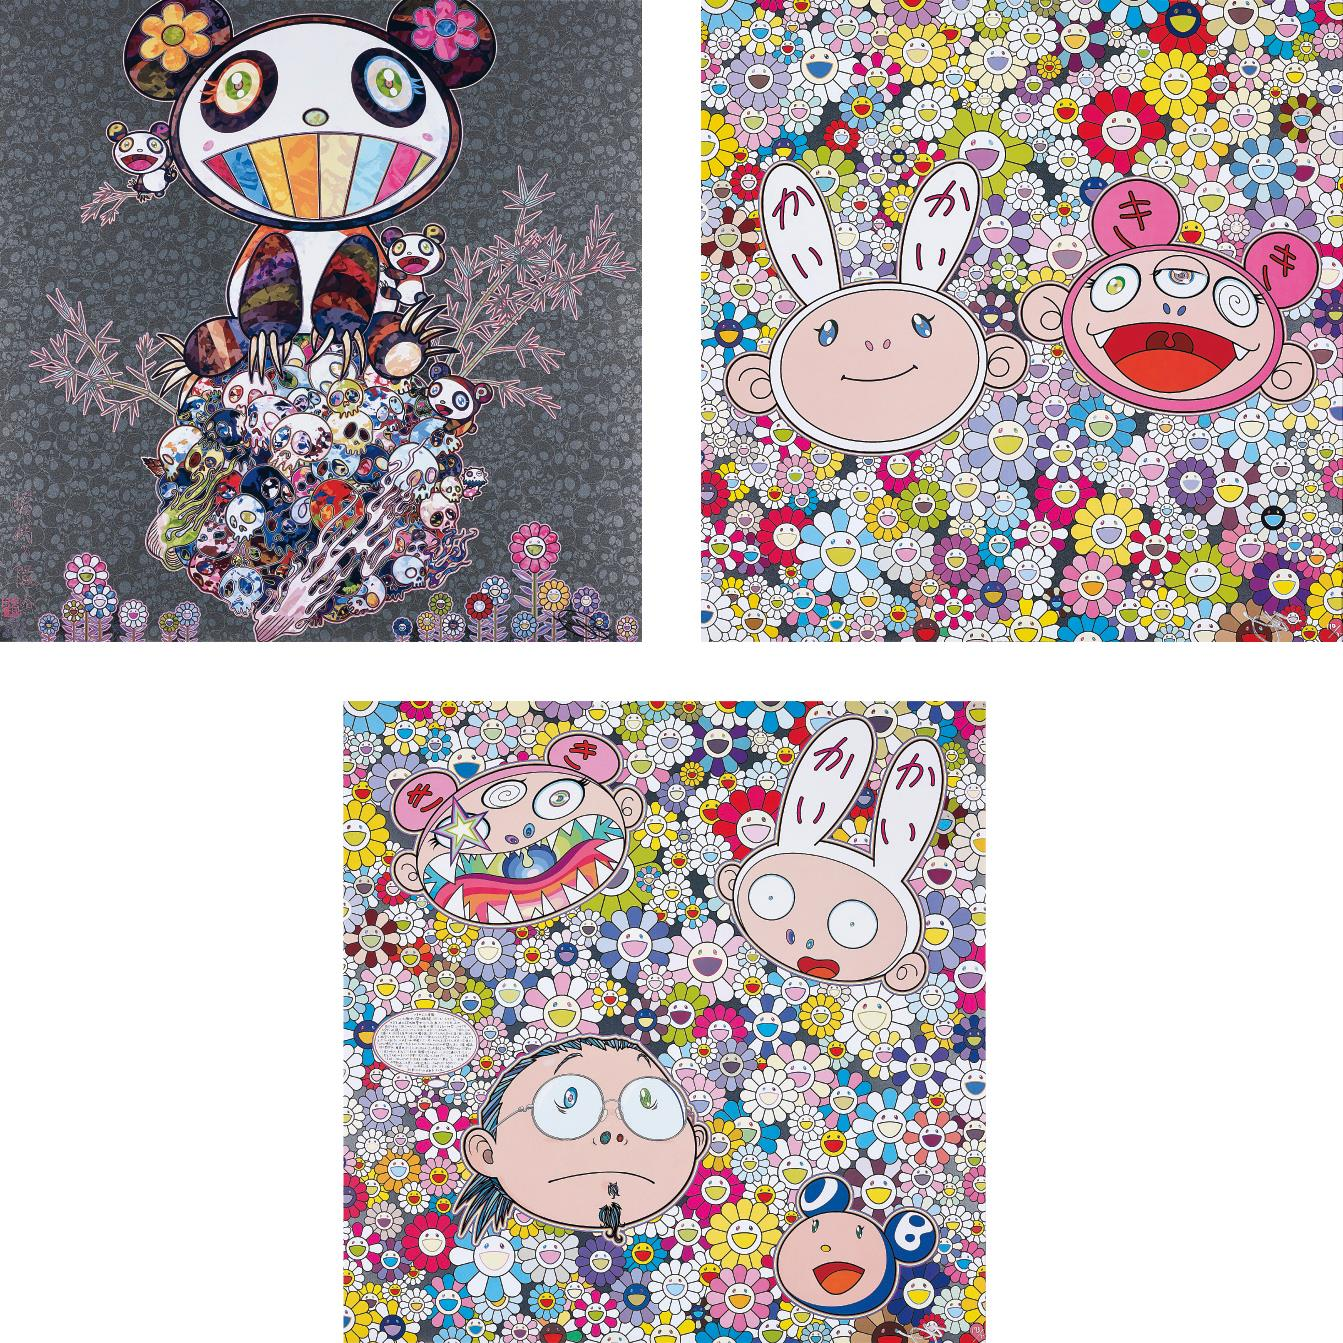 Takashi Murakami-Panda & Panda Cubs; Kaikai & Kiki: Dreaming of Shangri-la; and The Creative Mind-2015